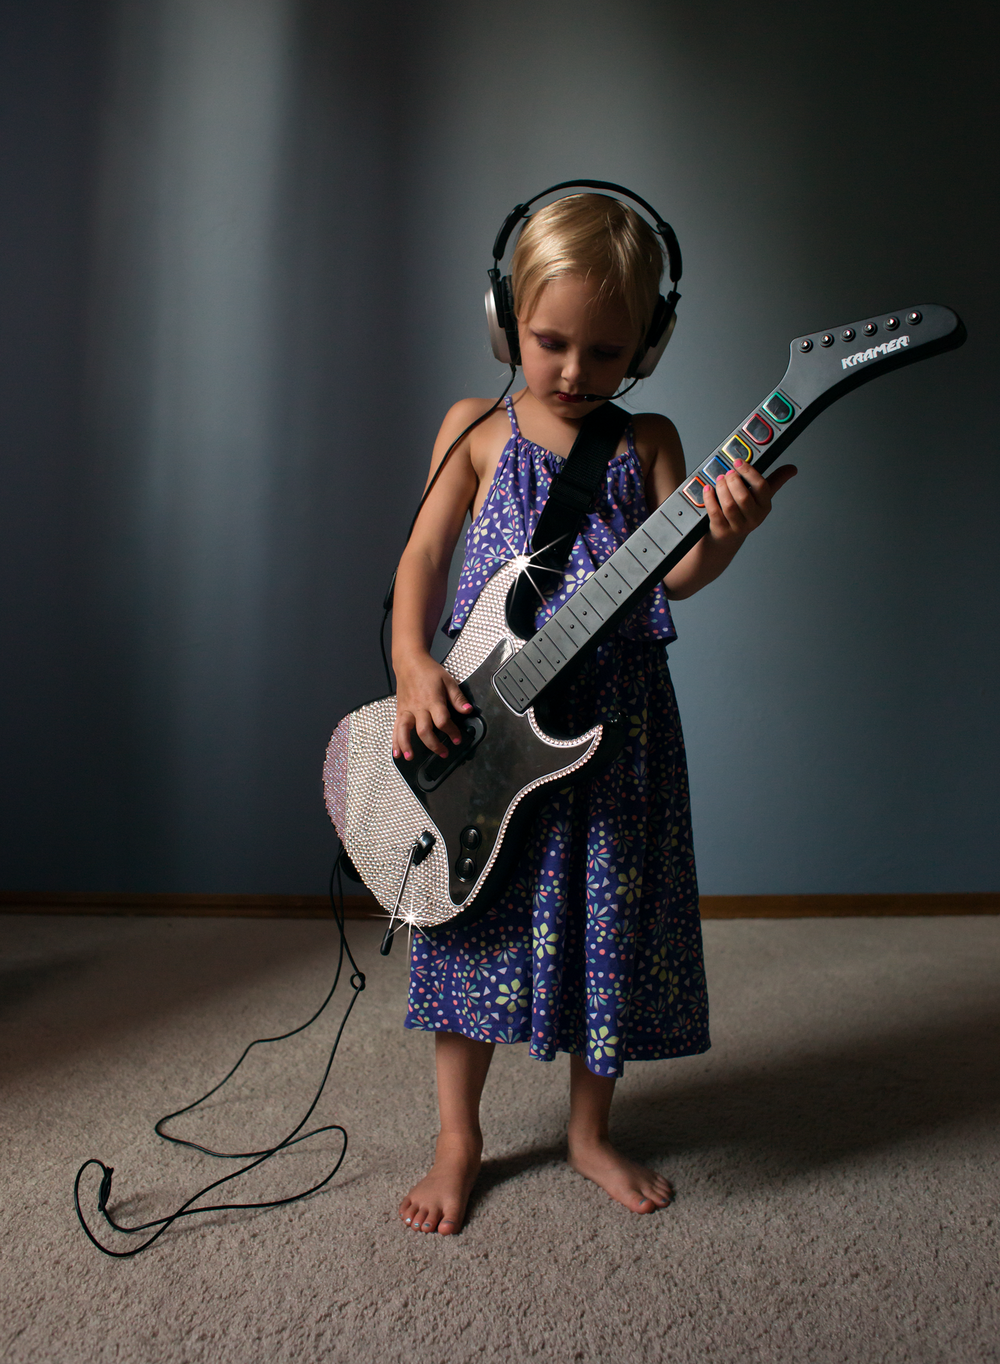 04 little rocker girl playing bling guitar hero headset lifestyle natural light edmond ok photographer oklahoma city (3).png